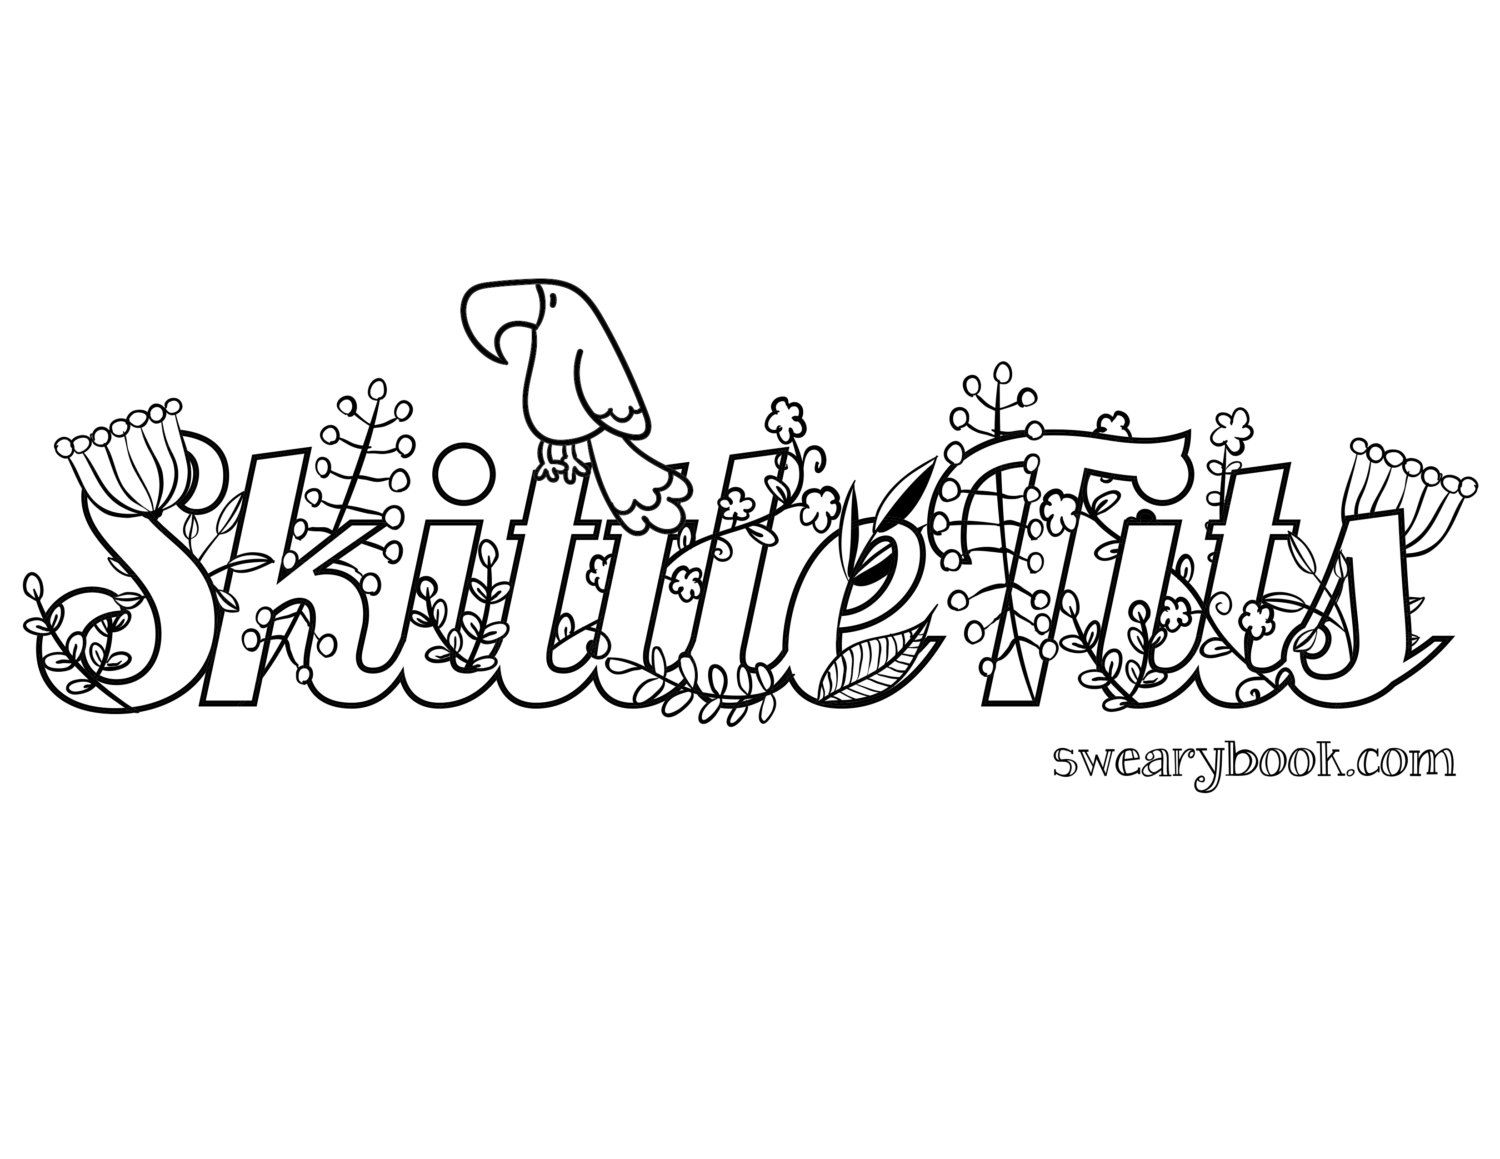 Skittle Tits Swear Words Coloring Page From The Door Swearybook